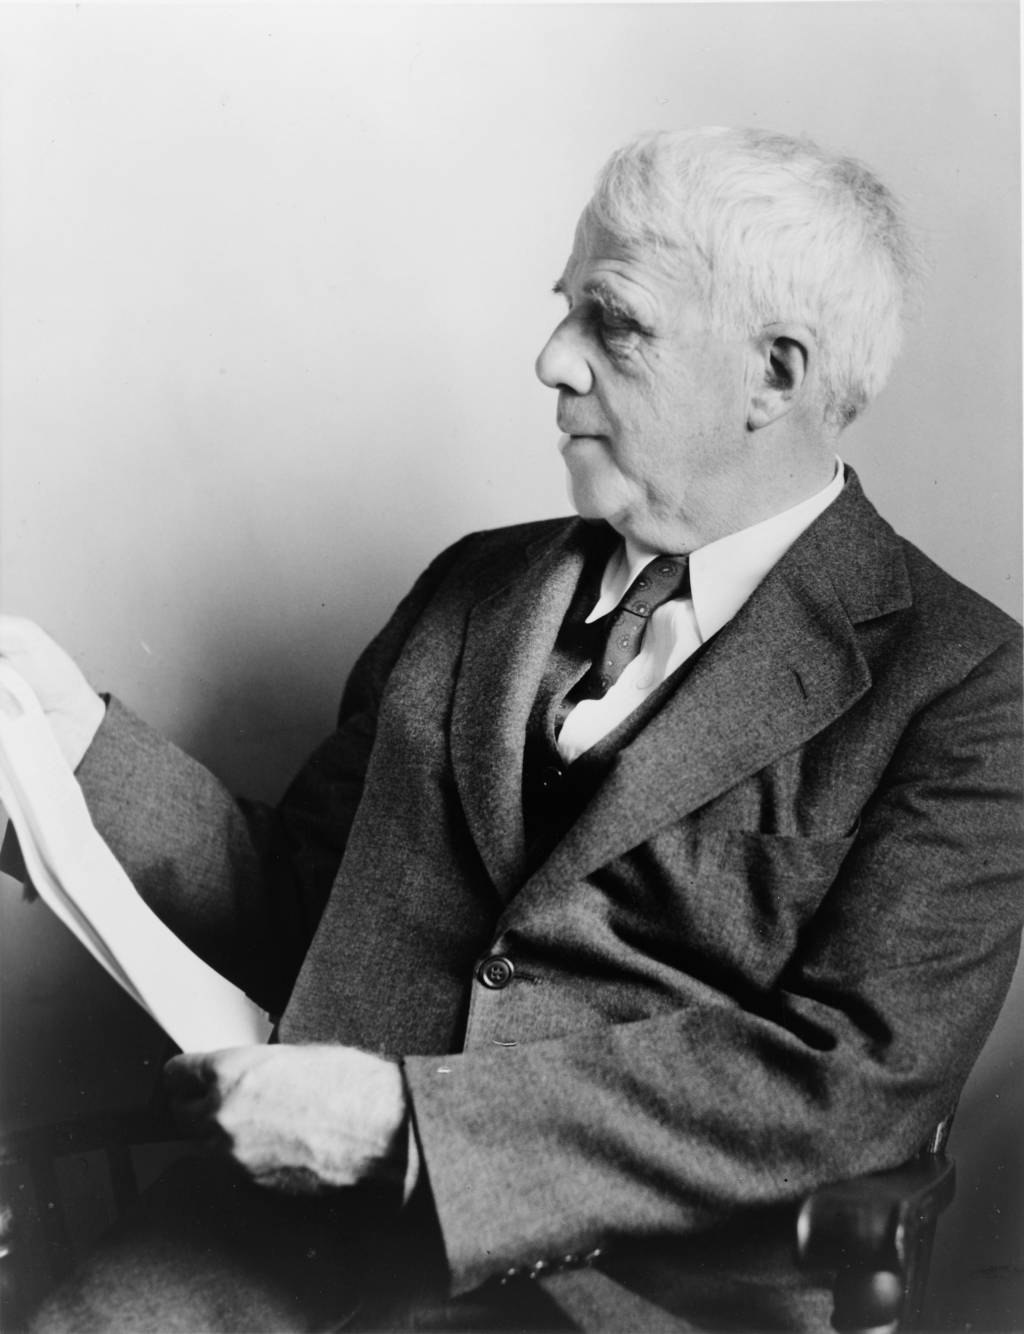 poem analysis essay of robert frost s poem the road not taken the road not taken 1874 1963 robert frost american poet